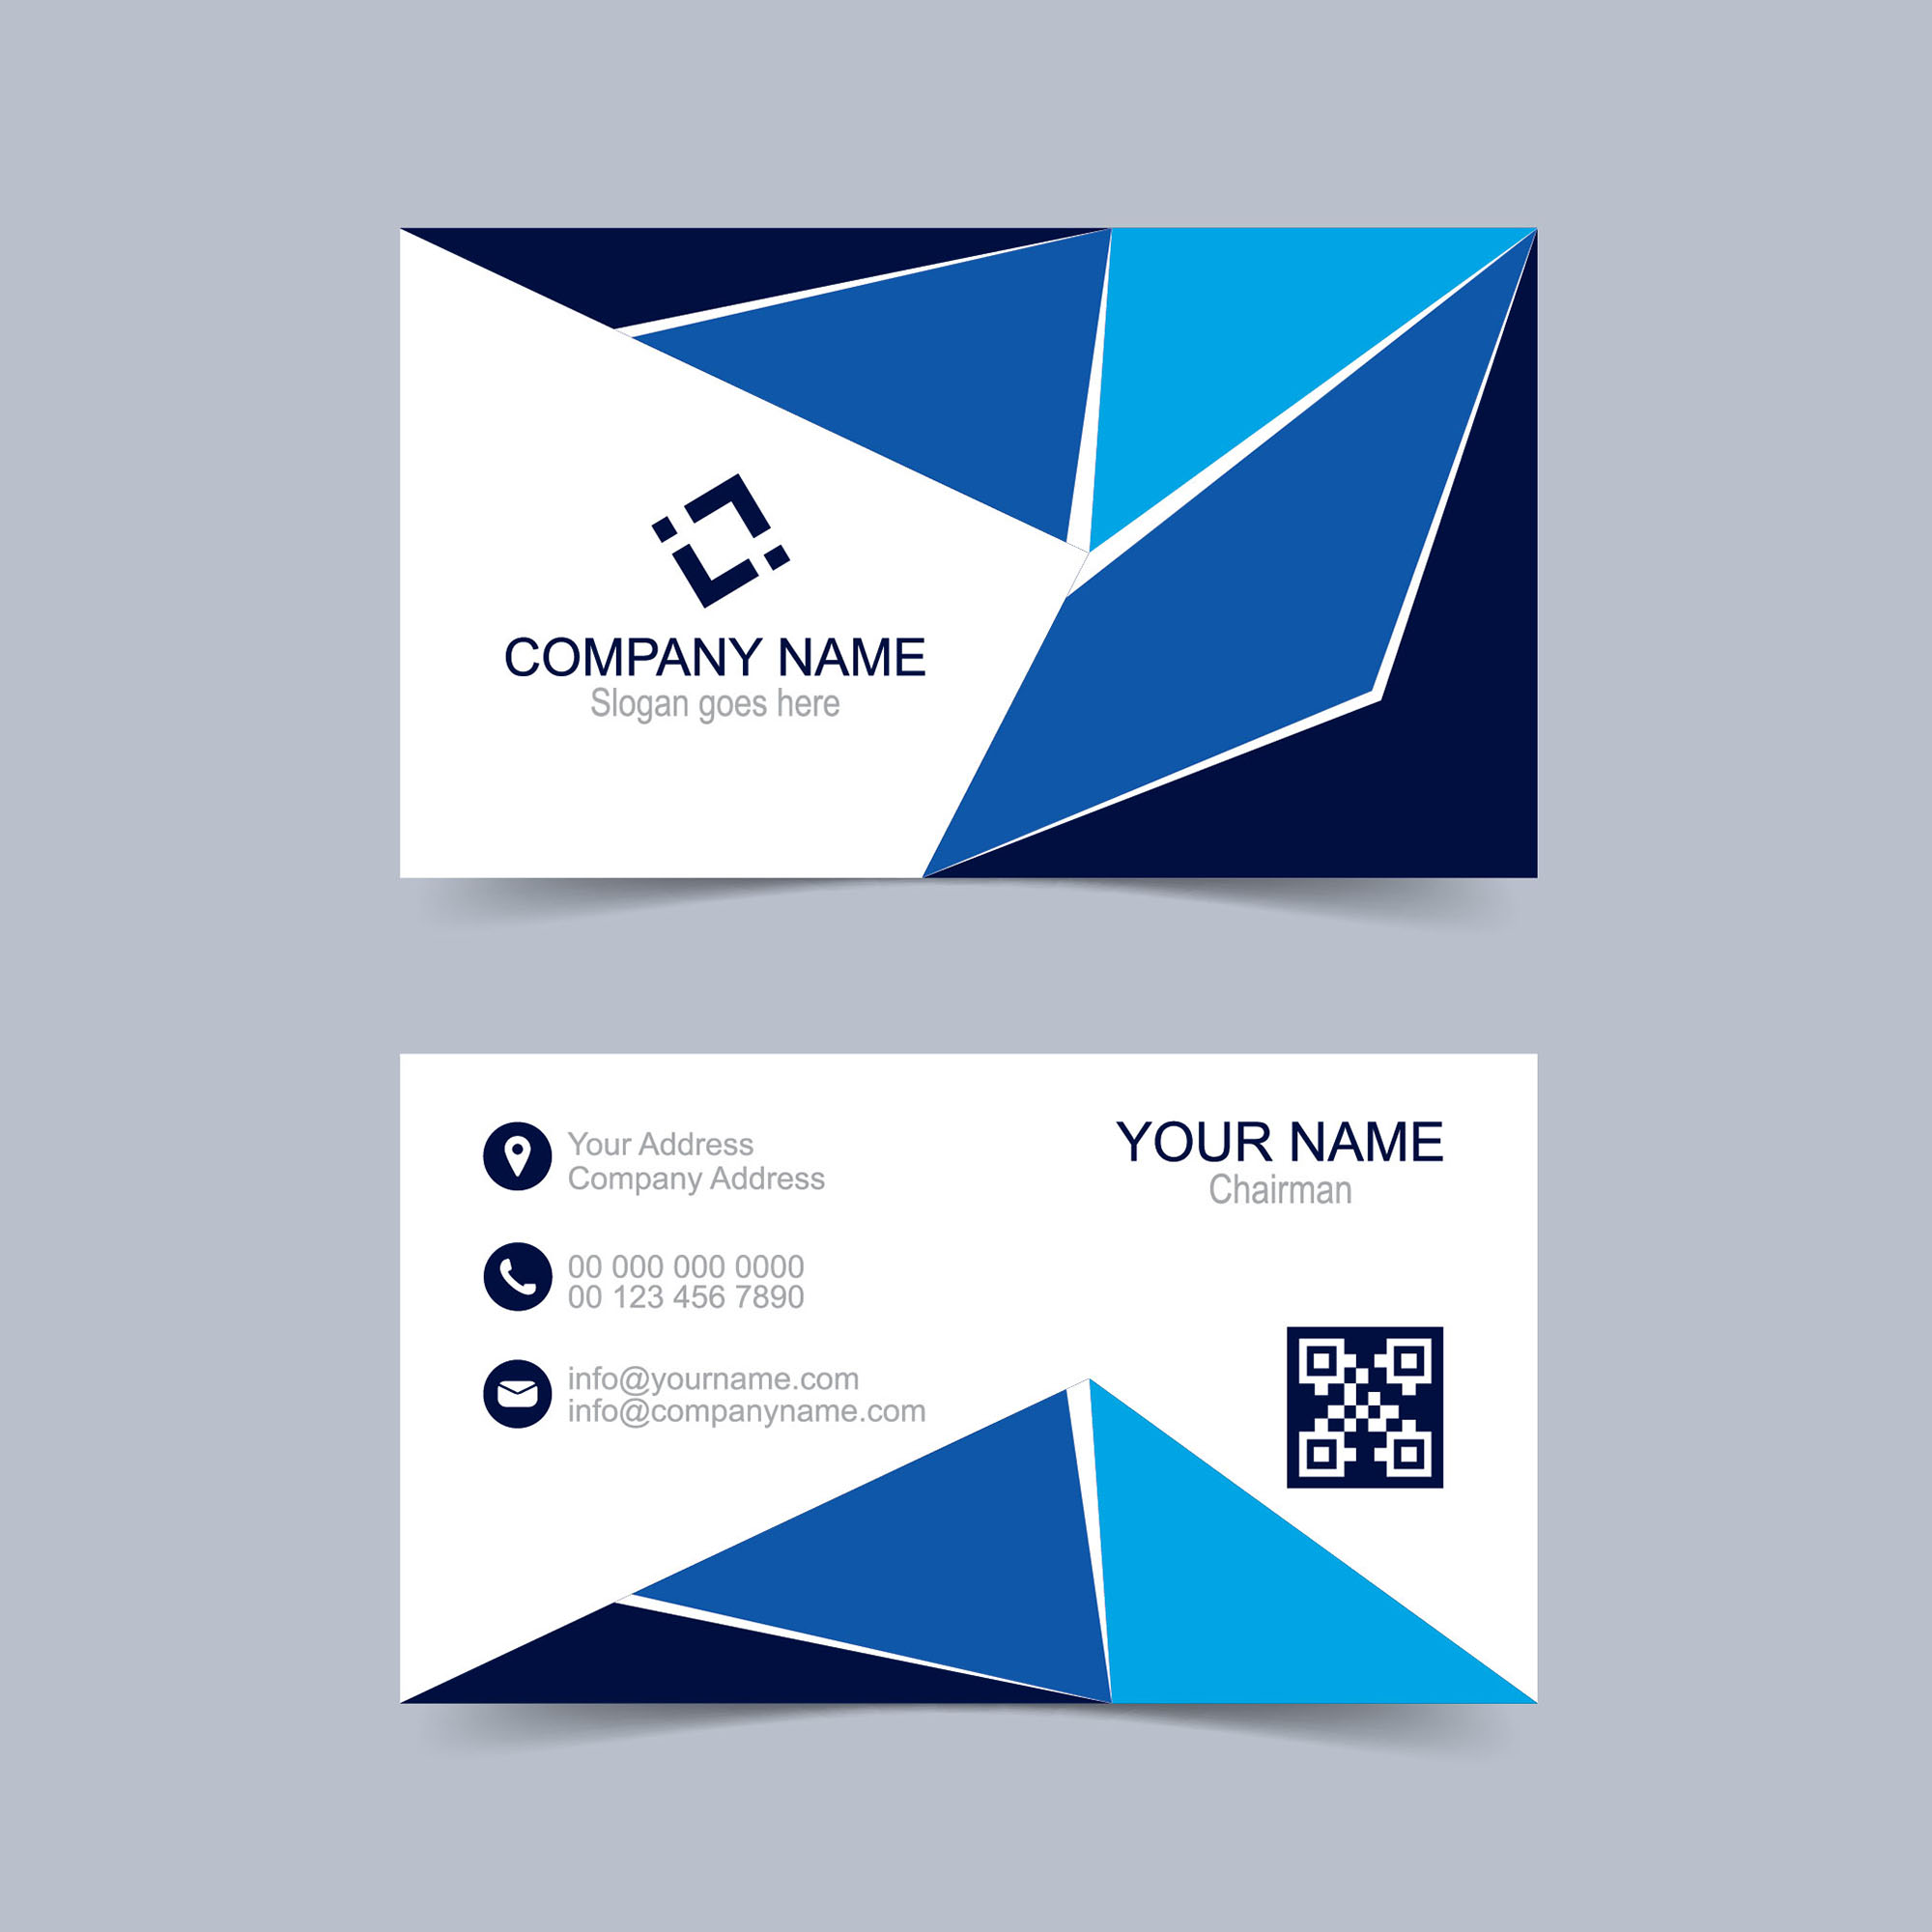 Creative Business Card Design Free Download Wisxicom - Free business card design templates